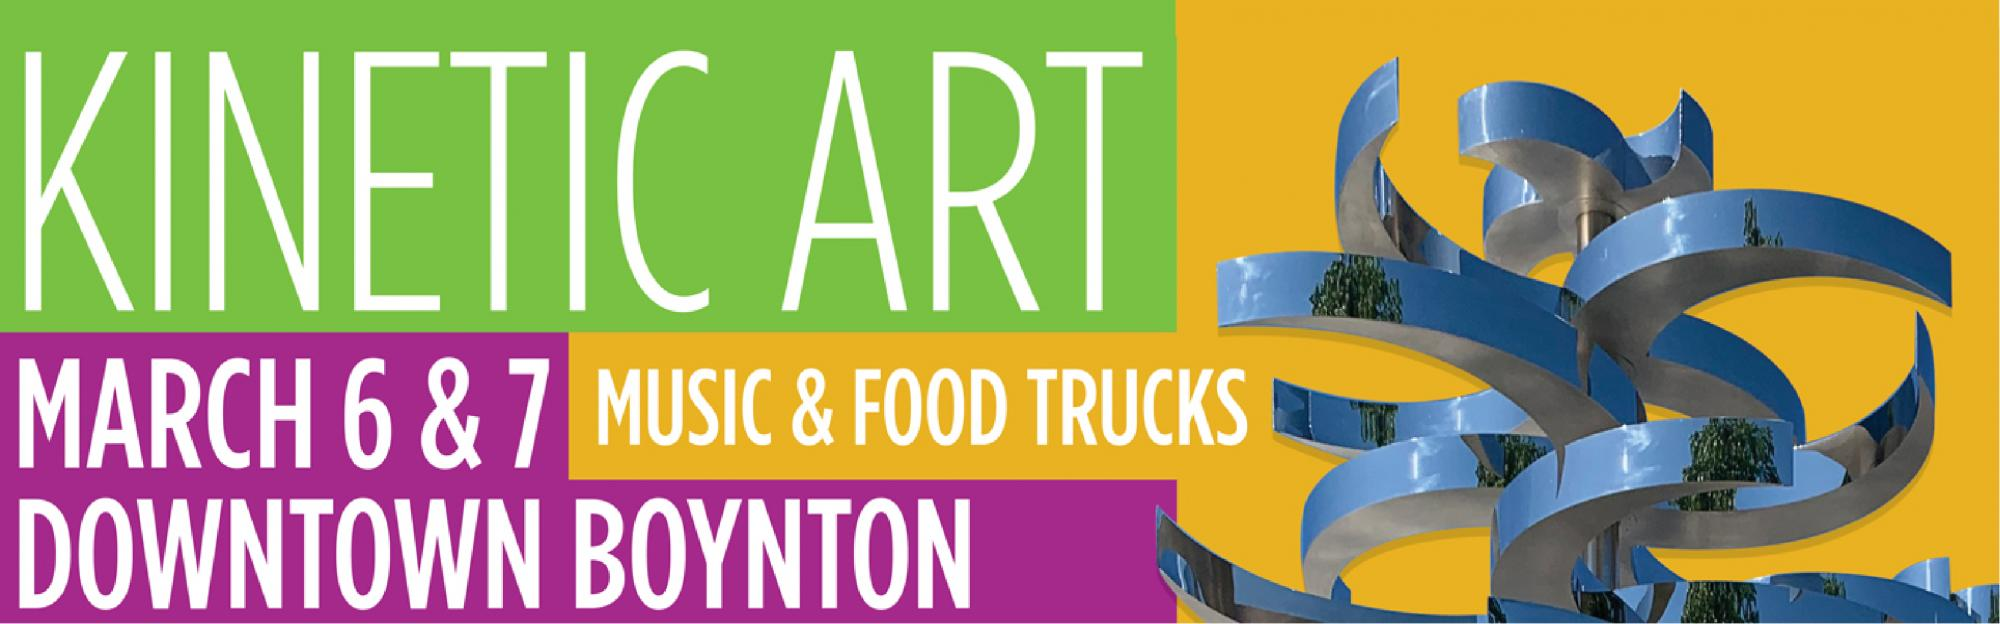 kinetic art march 6 and 7 downtown boynton